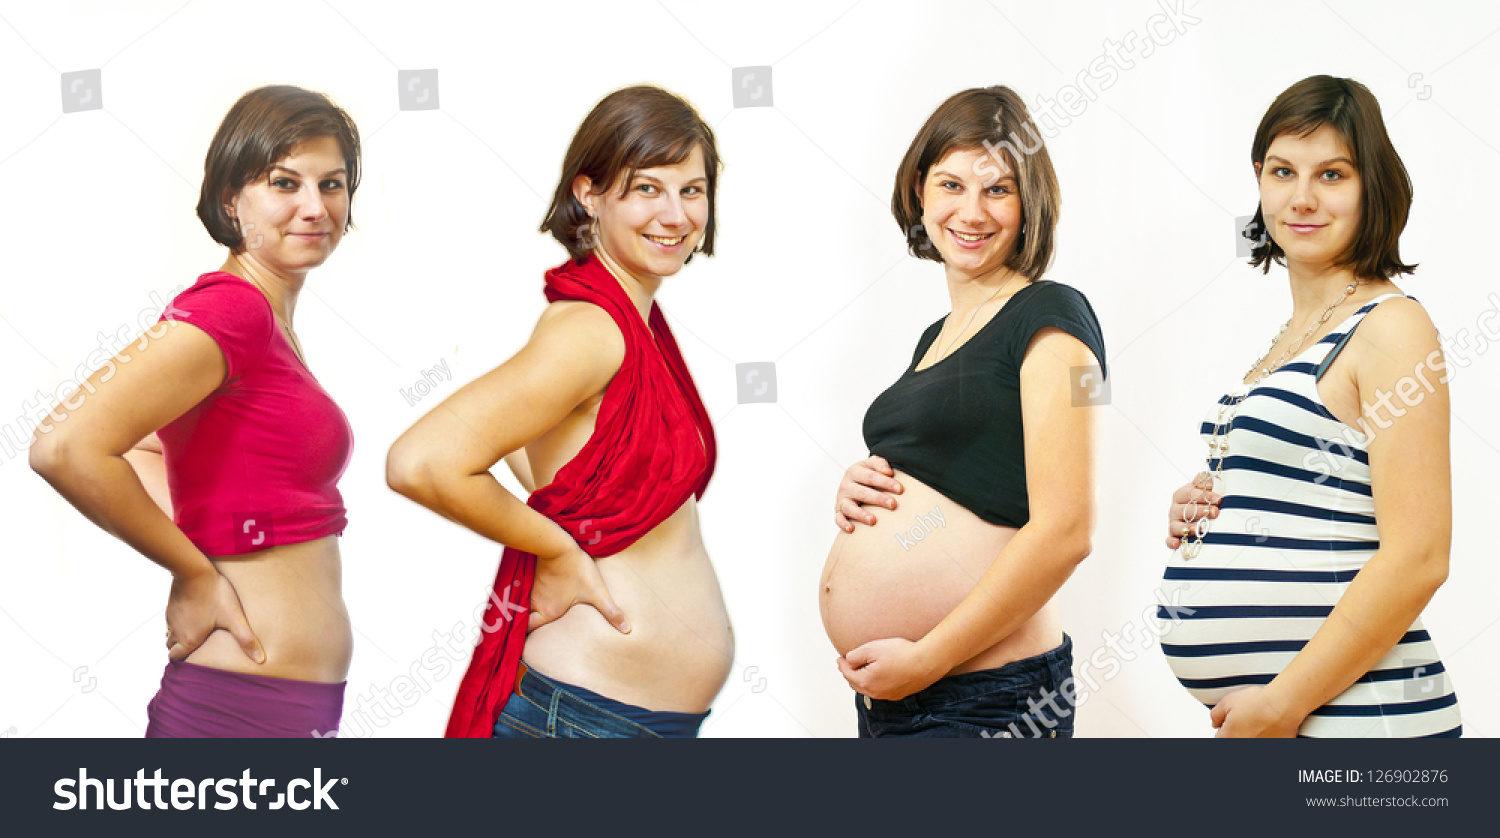 Pictures of a four months pregnant woman